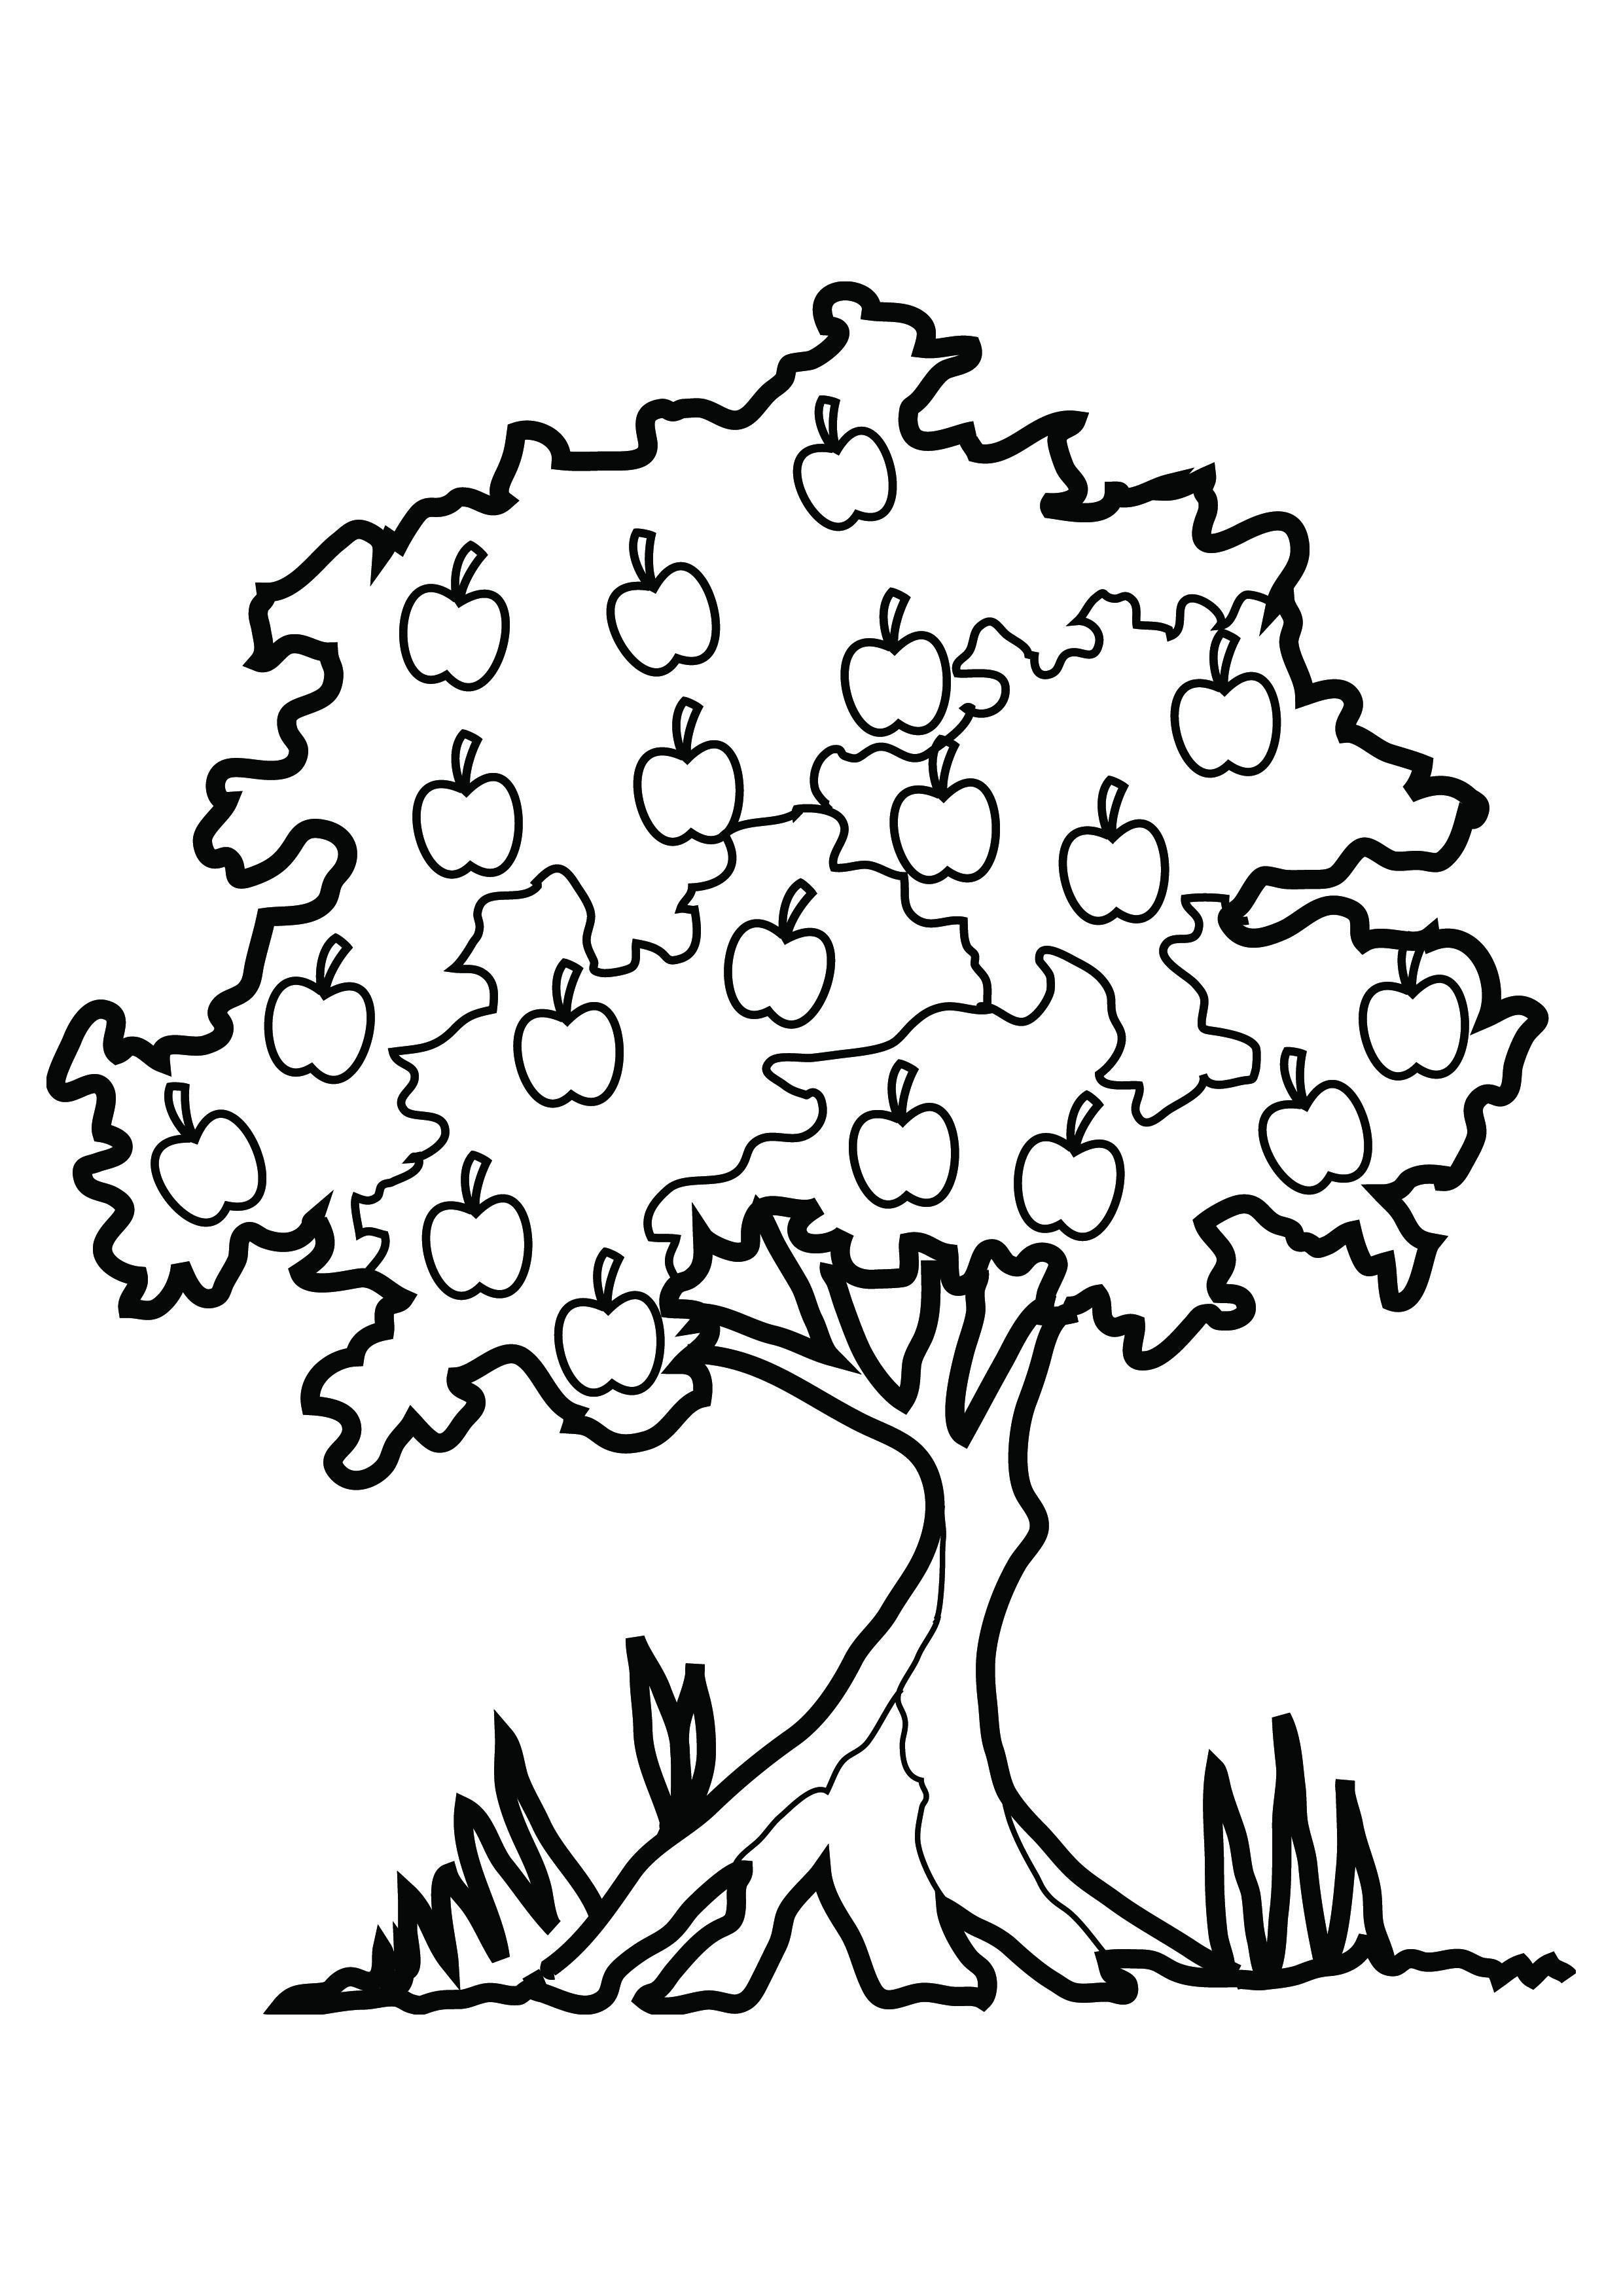 2480x3508 A Tree With Roots Coloring Pages Free Coloring For Kids